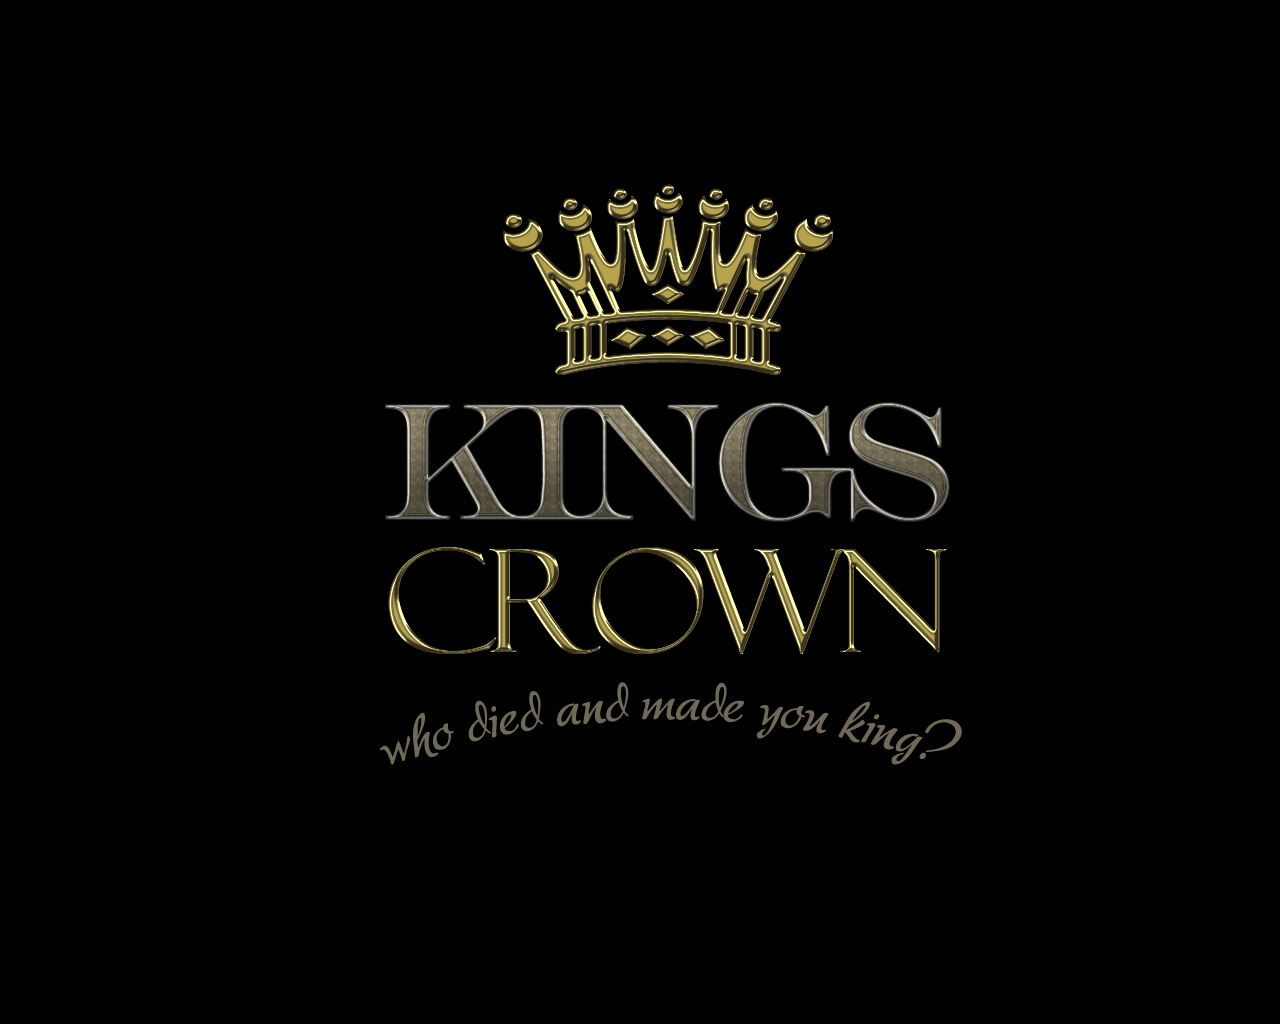 Queens Crown Wallpaper Hd